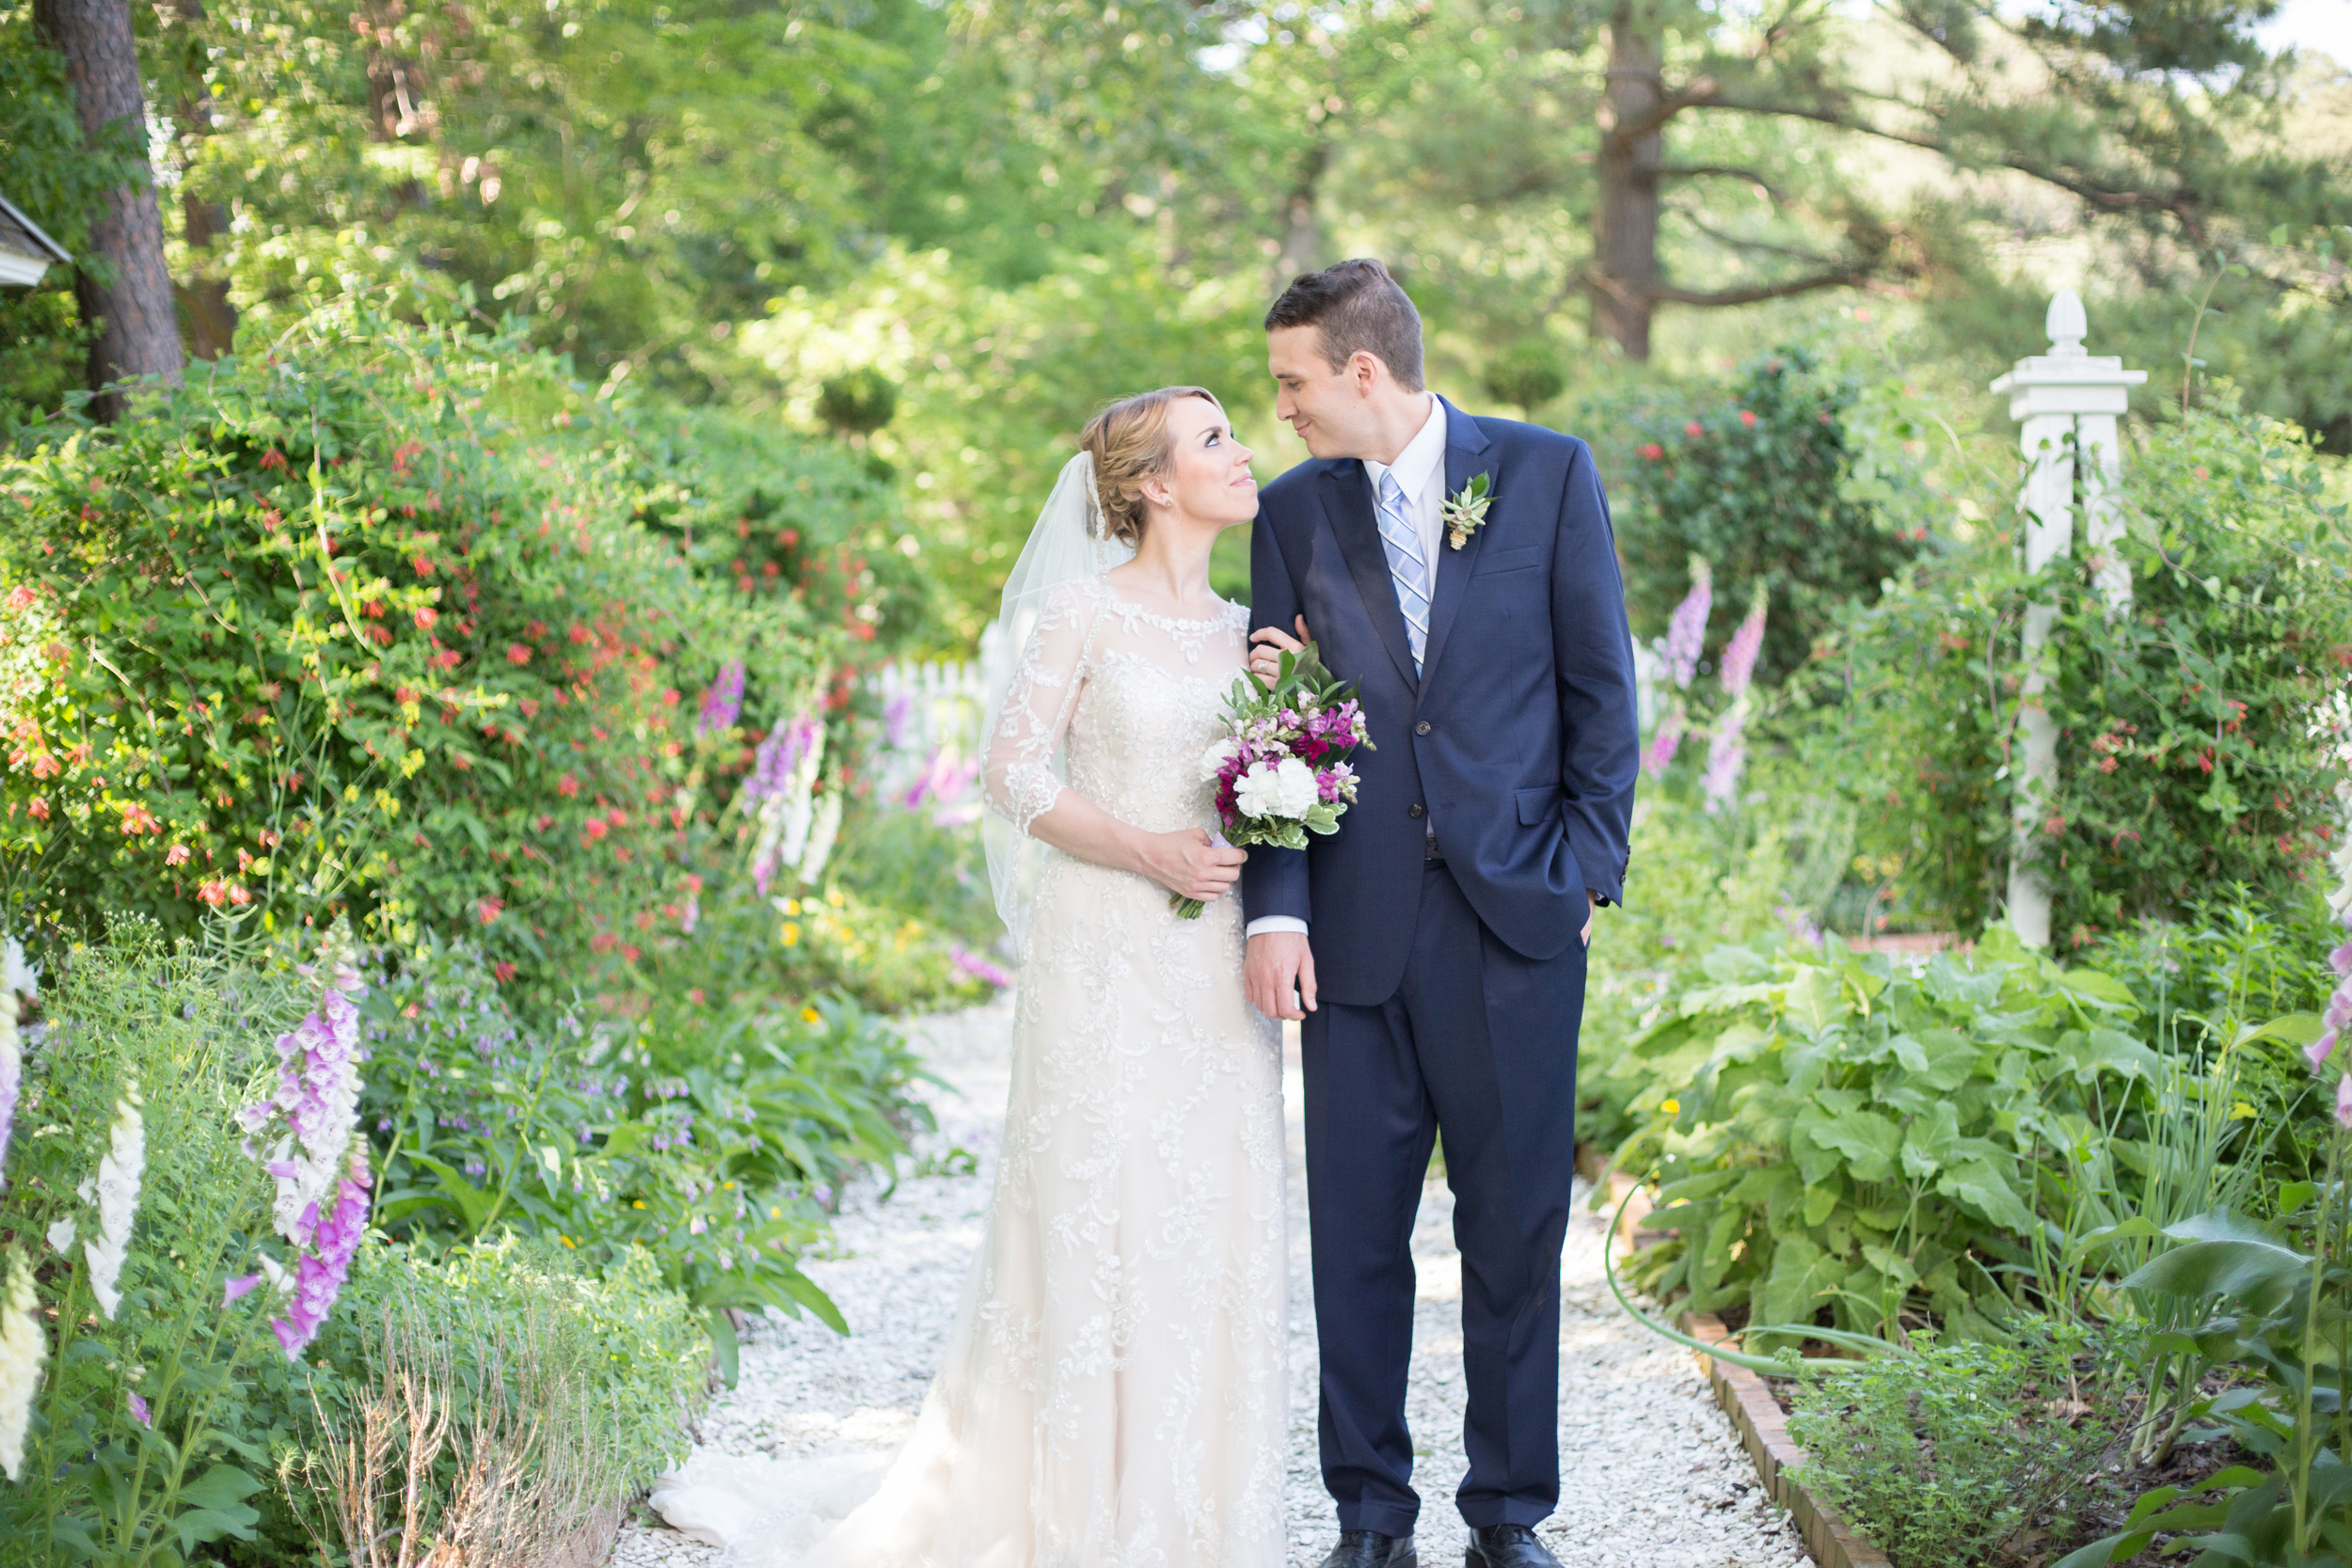 crystal belcher photography | norfolk botanical garden | wedding couple